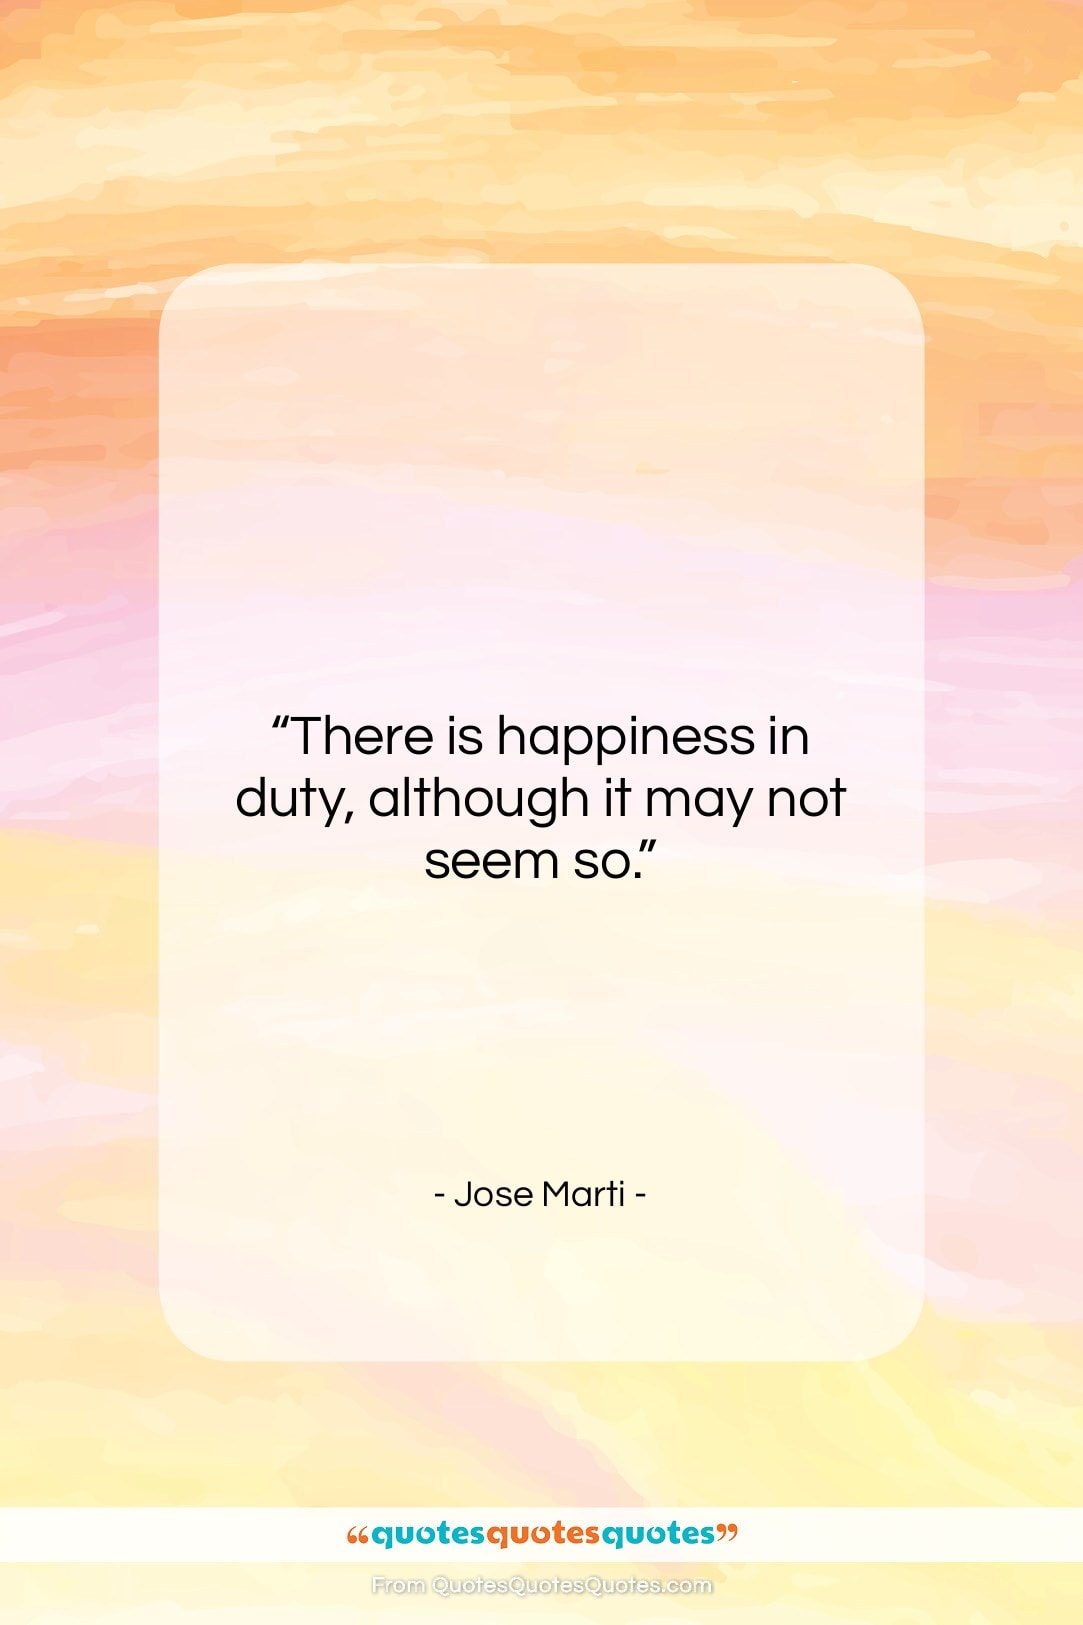 """Jose Marti quote: """"There is happiness in duty, although it…""""- at QuotesQuotesQuotes.com"""